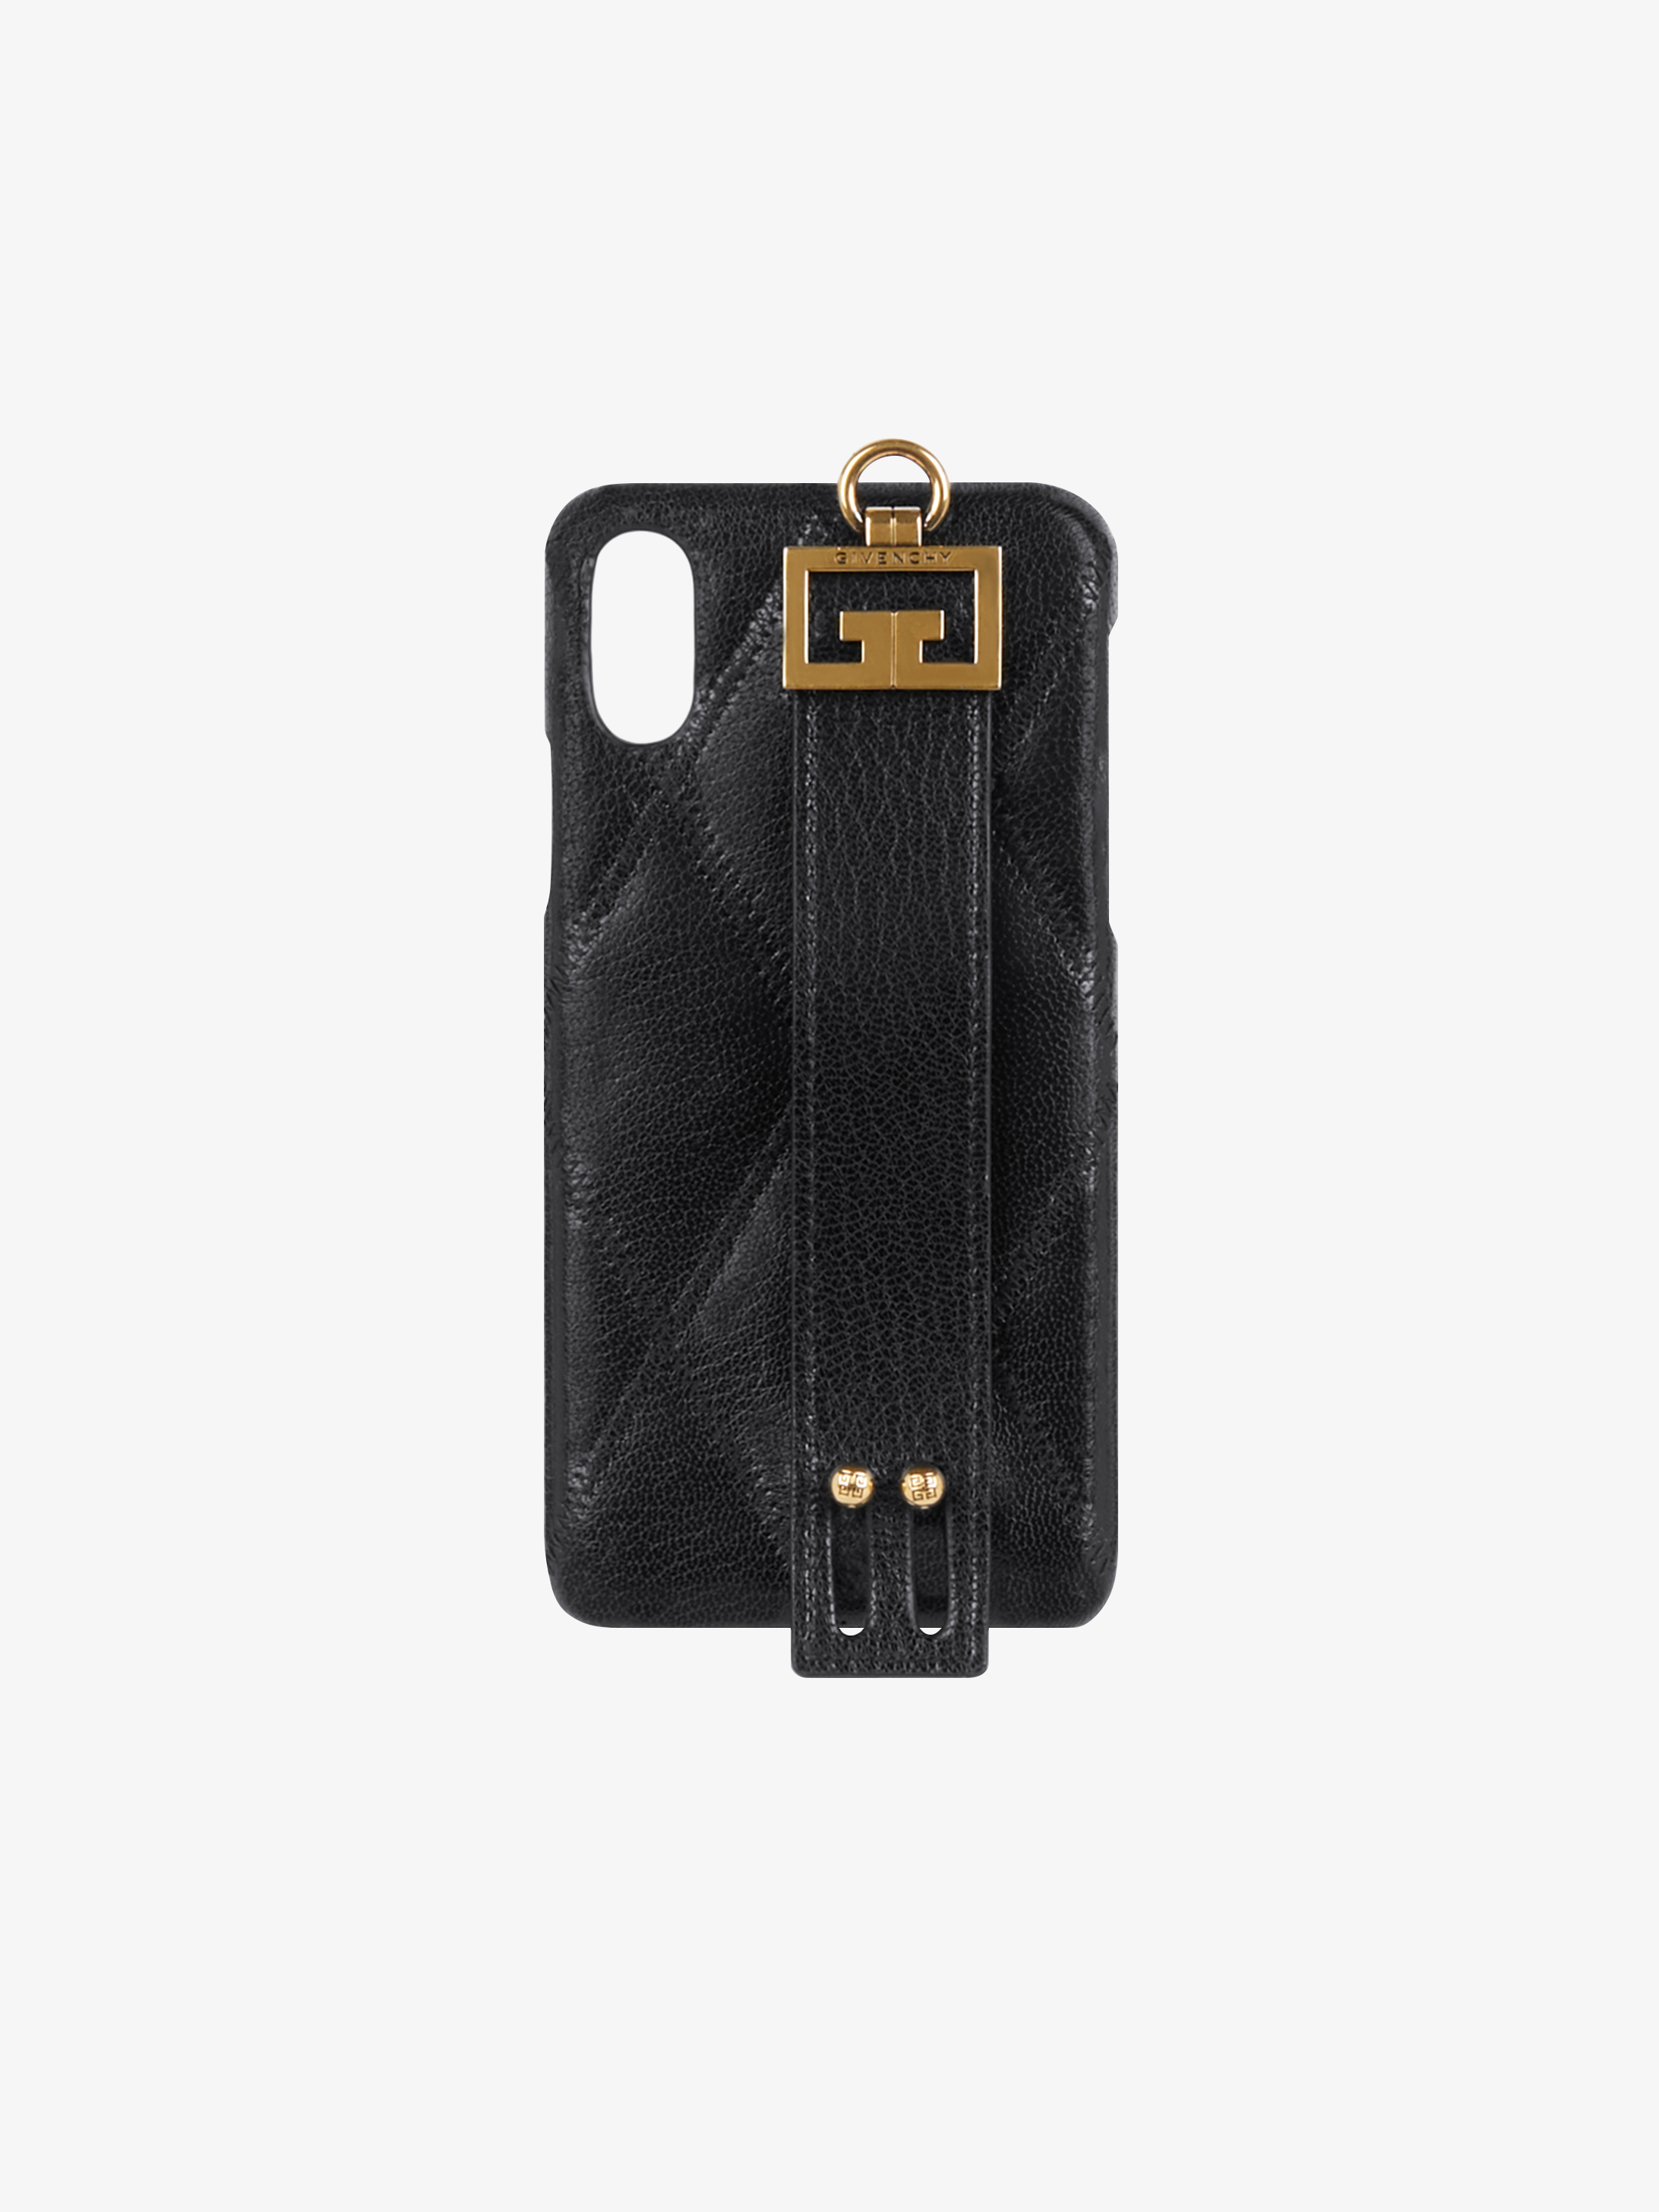 Iphone XS / X cover in diamond quilted leather